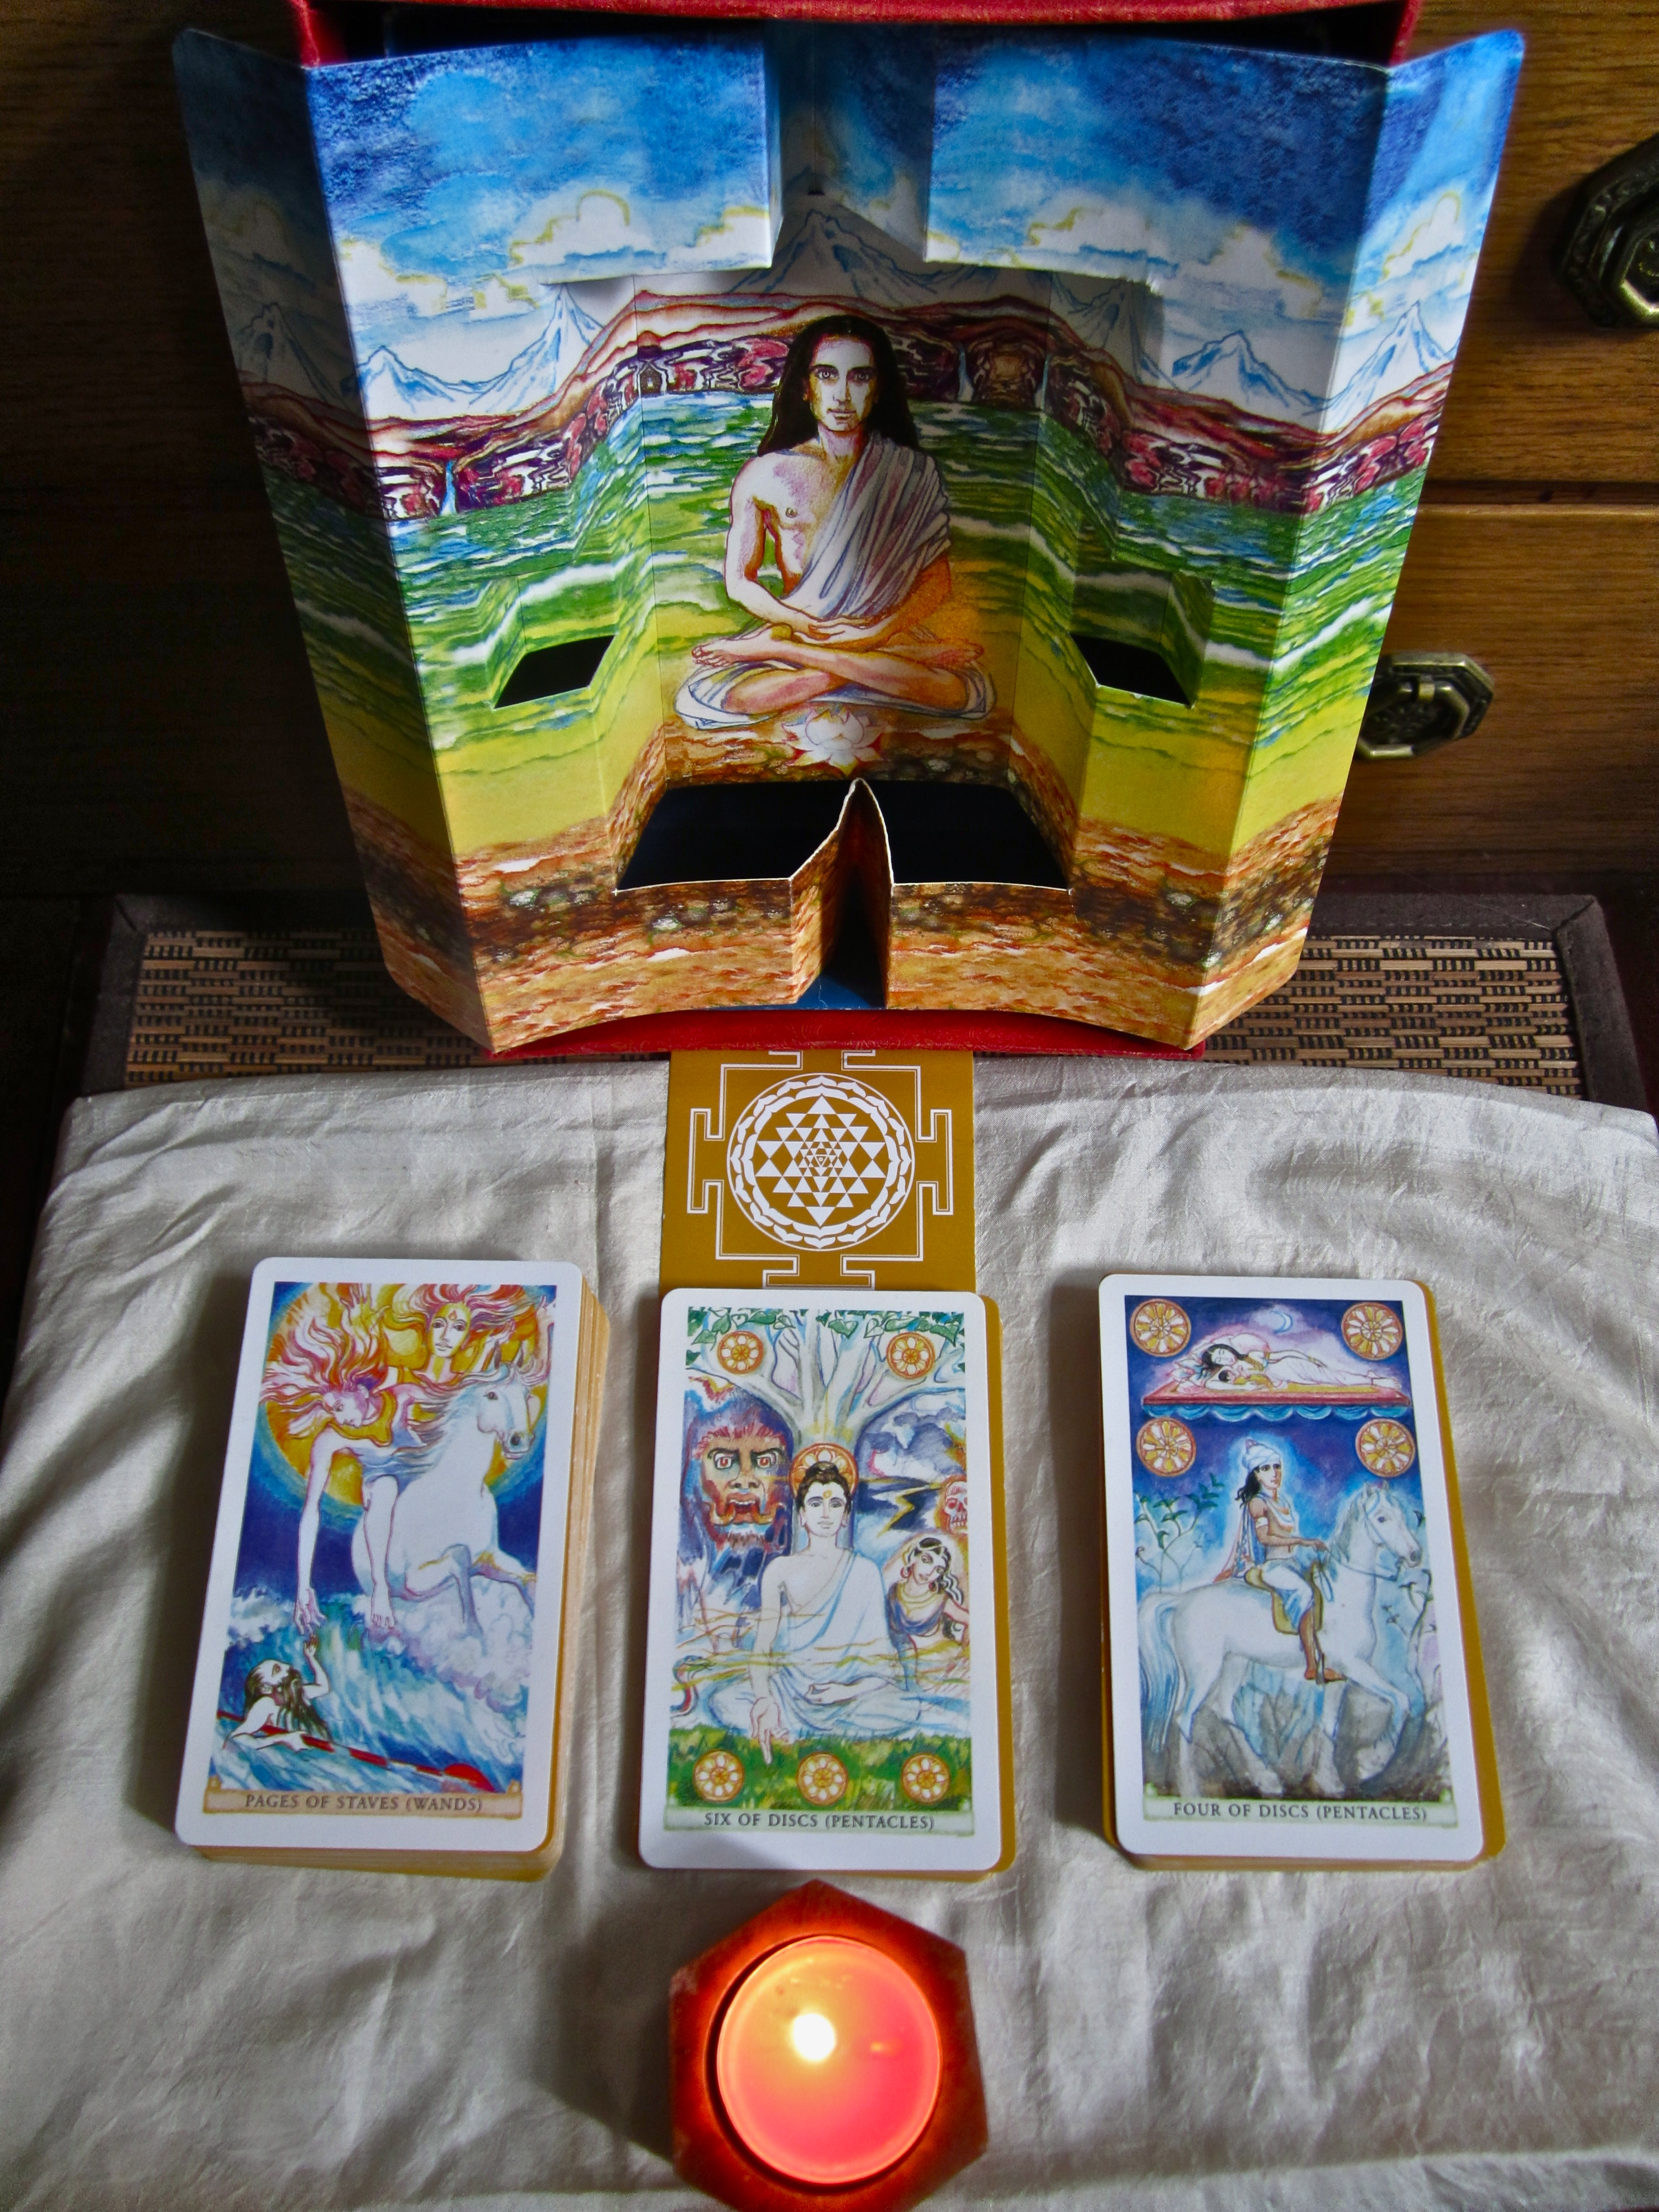 The Sacred India Tarot – Pictures Of The Deck